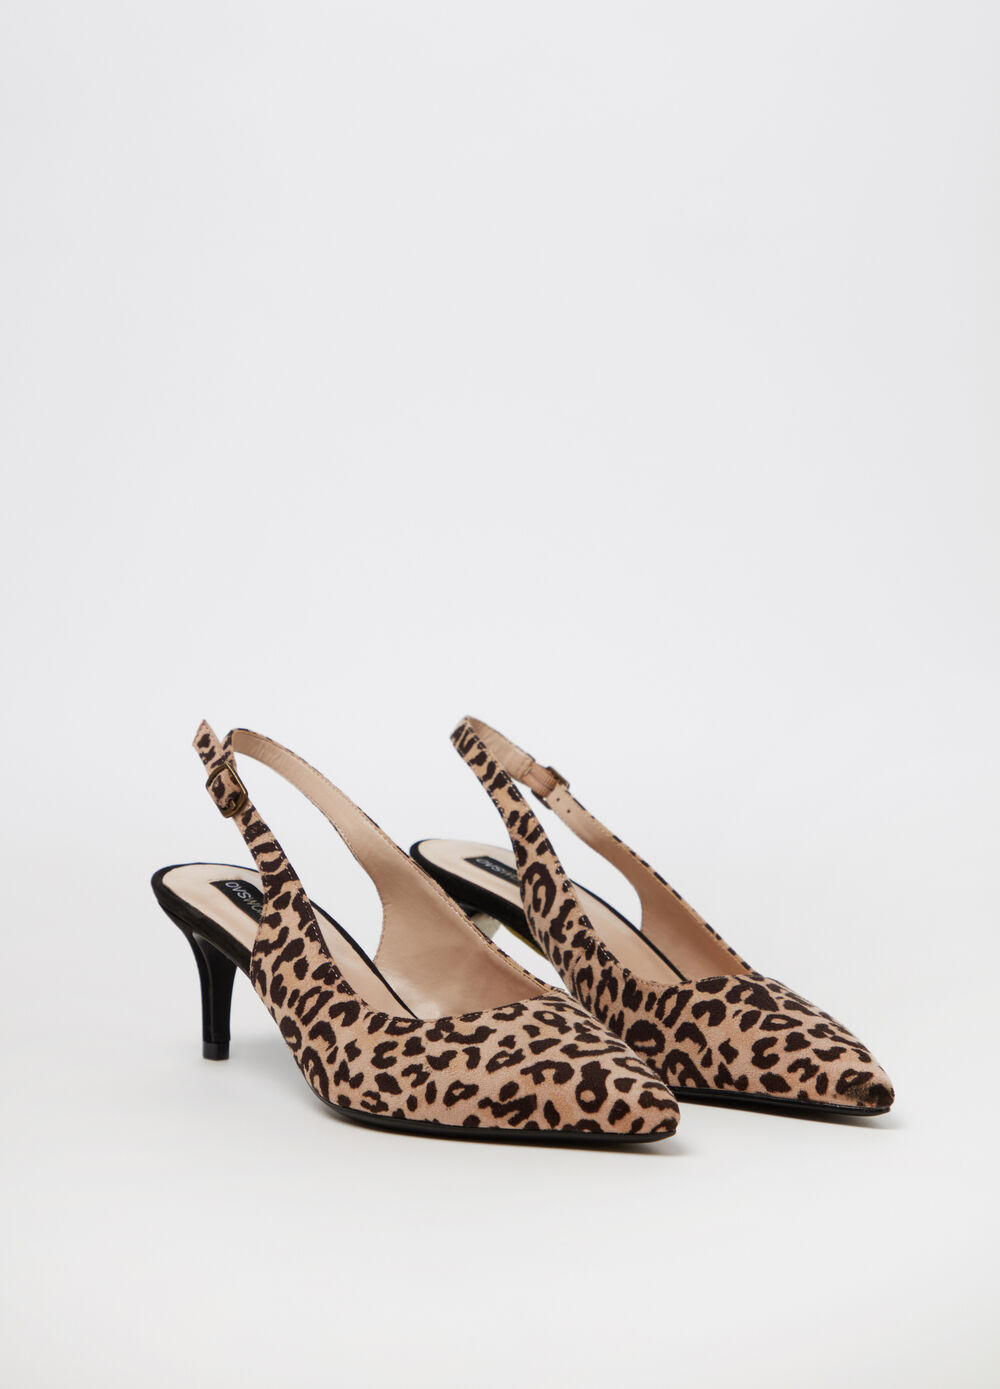 Court shoe with thin heel and animal print